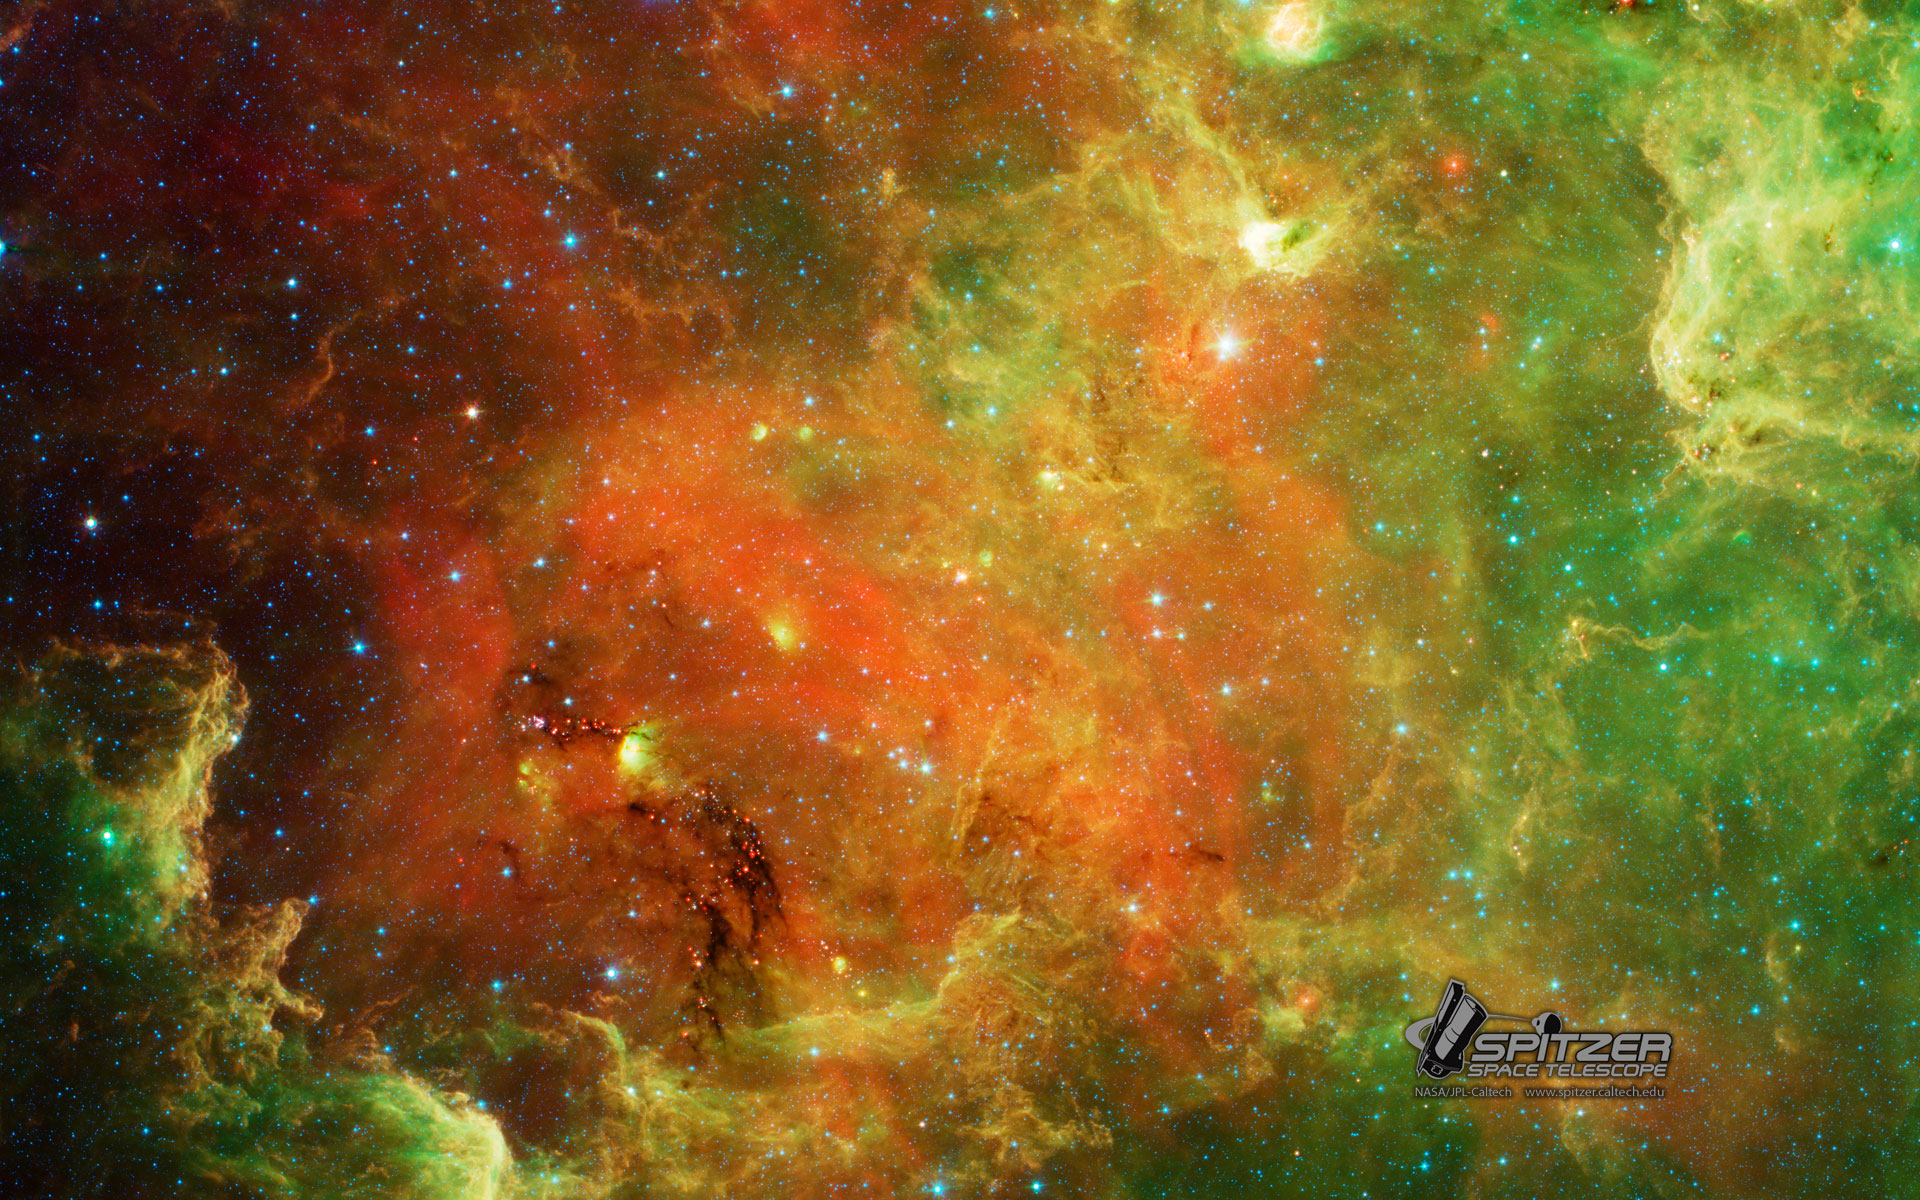 Download 1920 X - Green And Orange Space , HD Wallpaper & Backgrounds